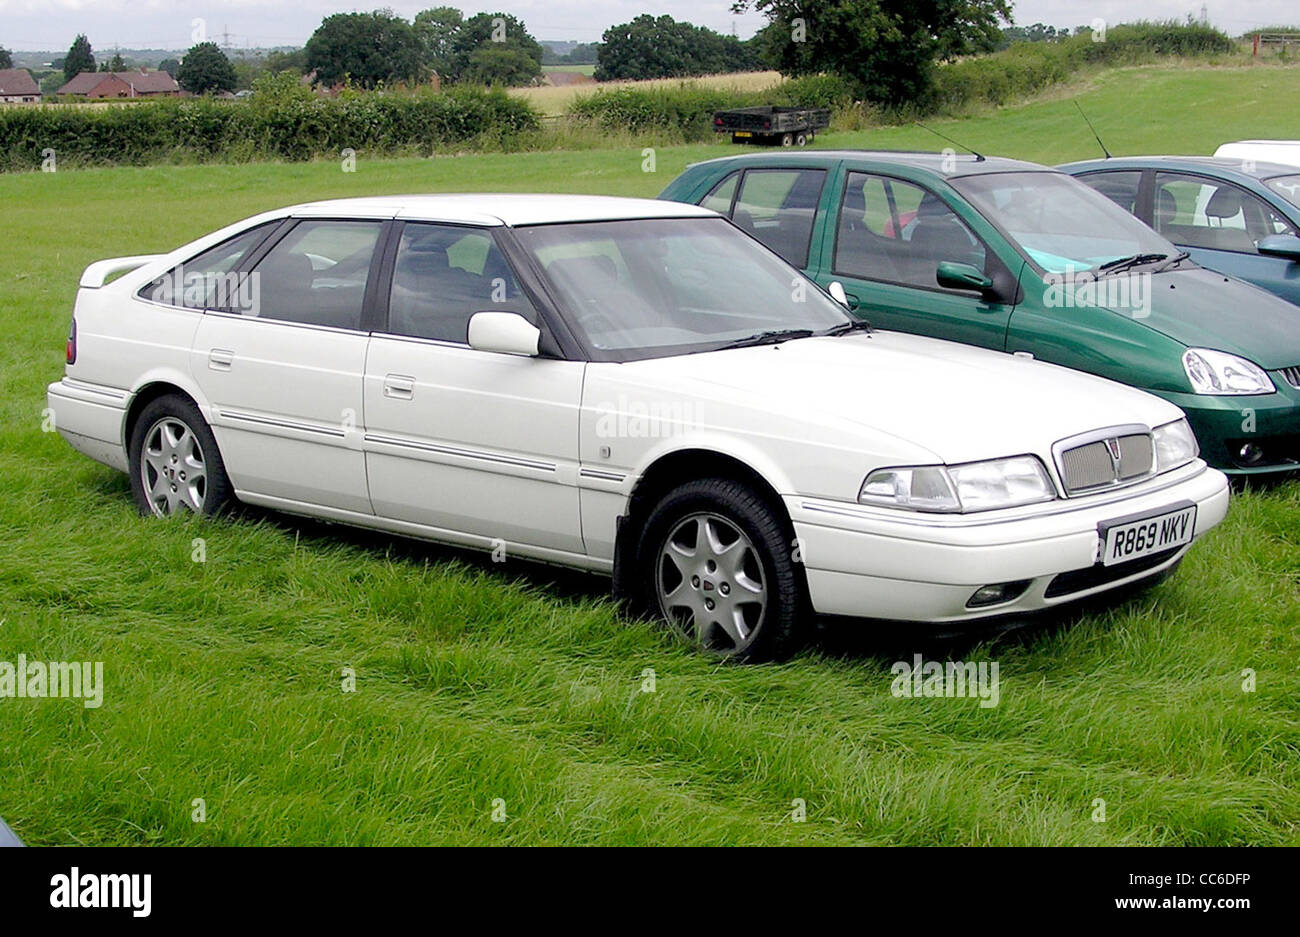 1997 Rover 800 at Coalpit Heath Car Show, near Bristol, England. - Stock Image